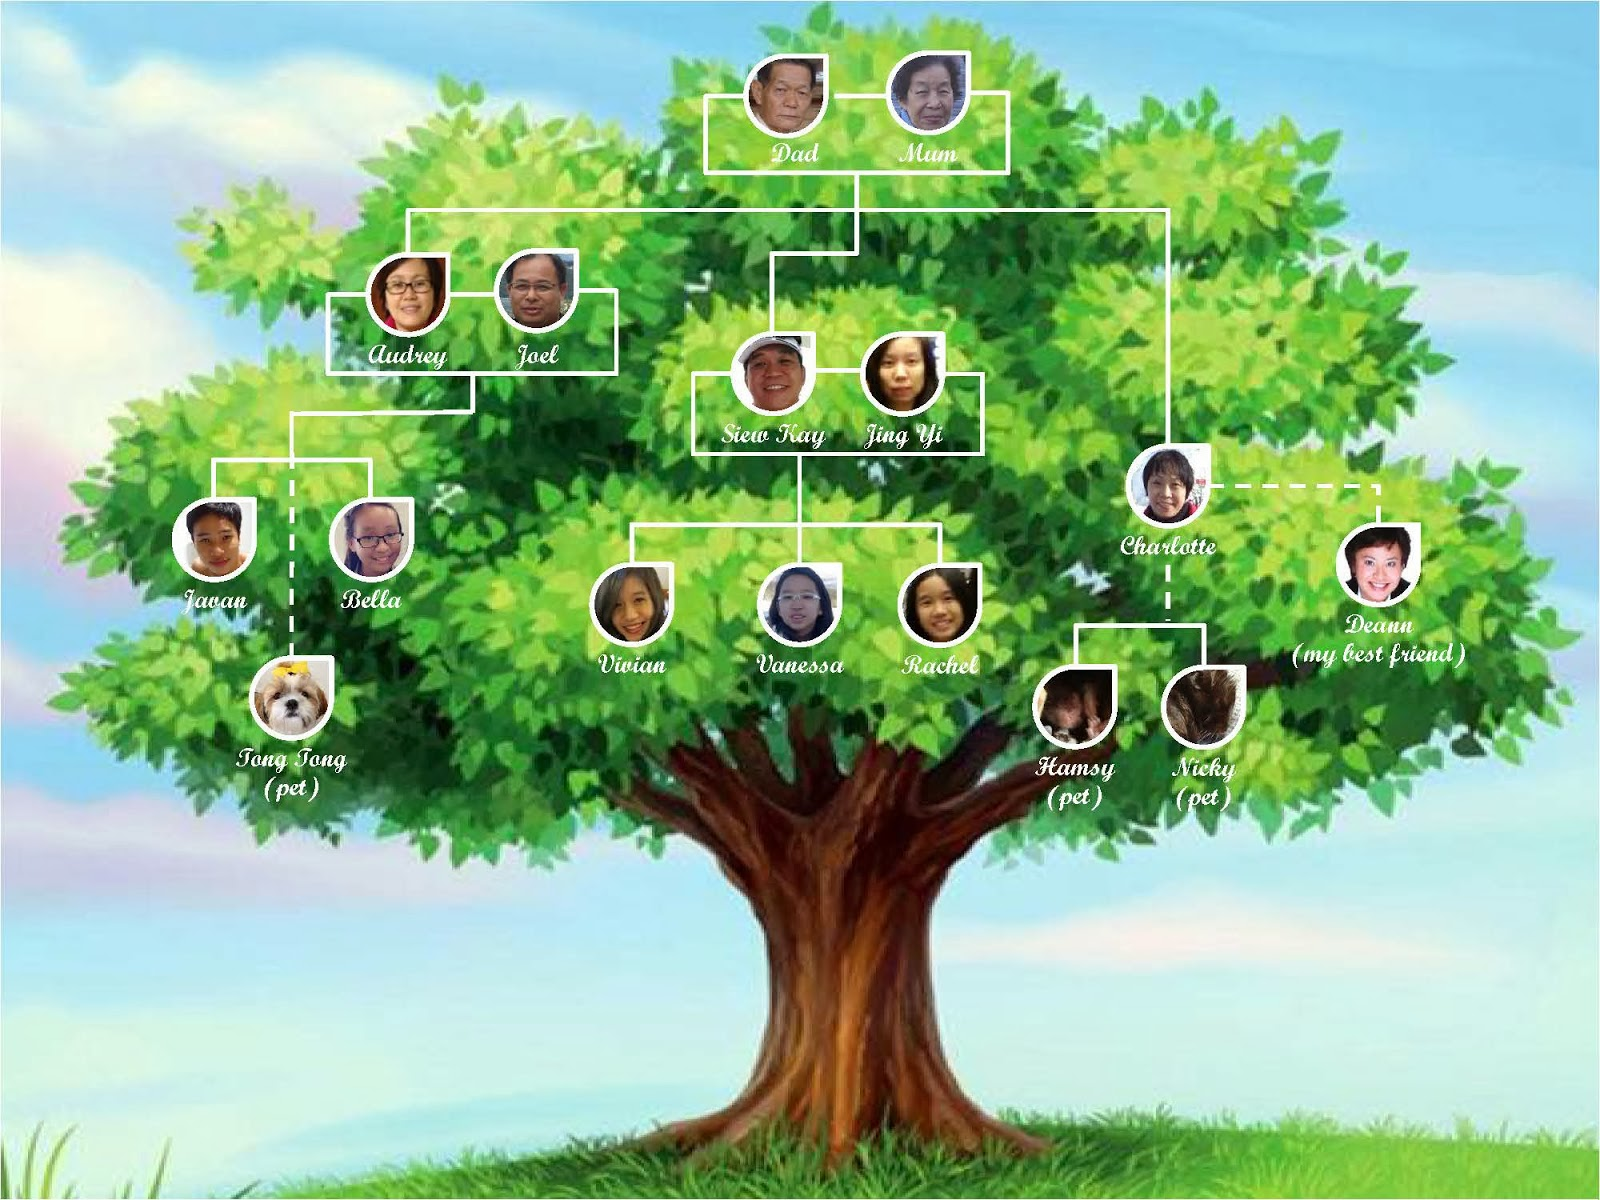 It is a graphic of Wild Picture of a Family Tree